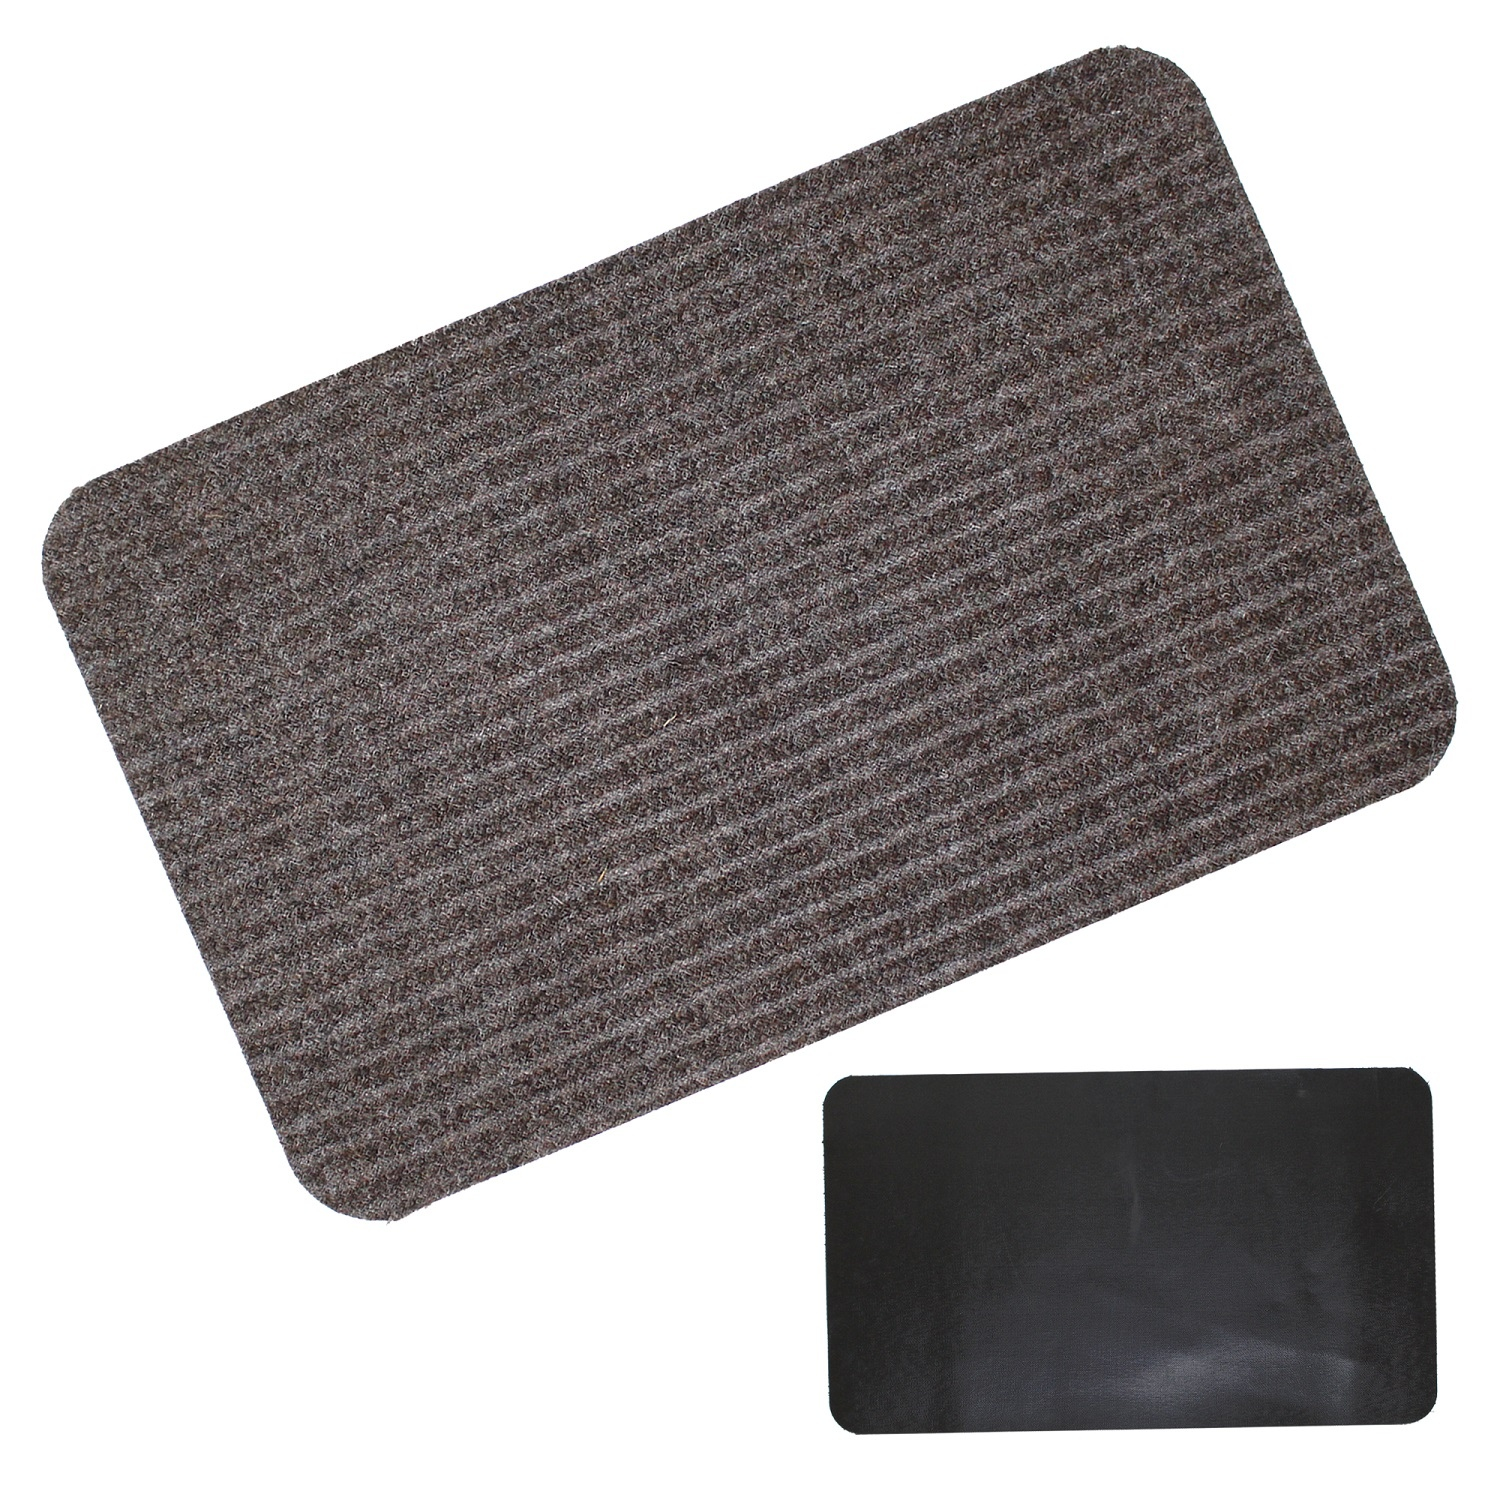 Entrance Door Floor Mat Mats Rubber Backing Home Shop